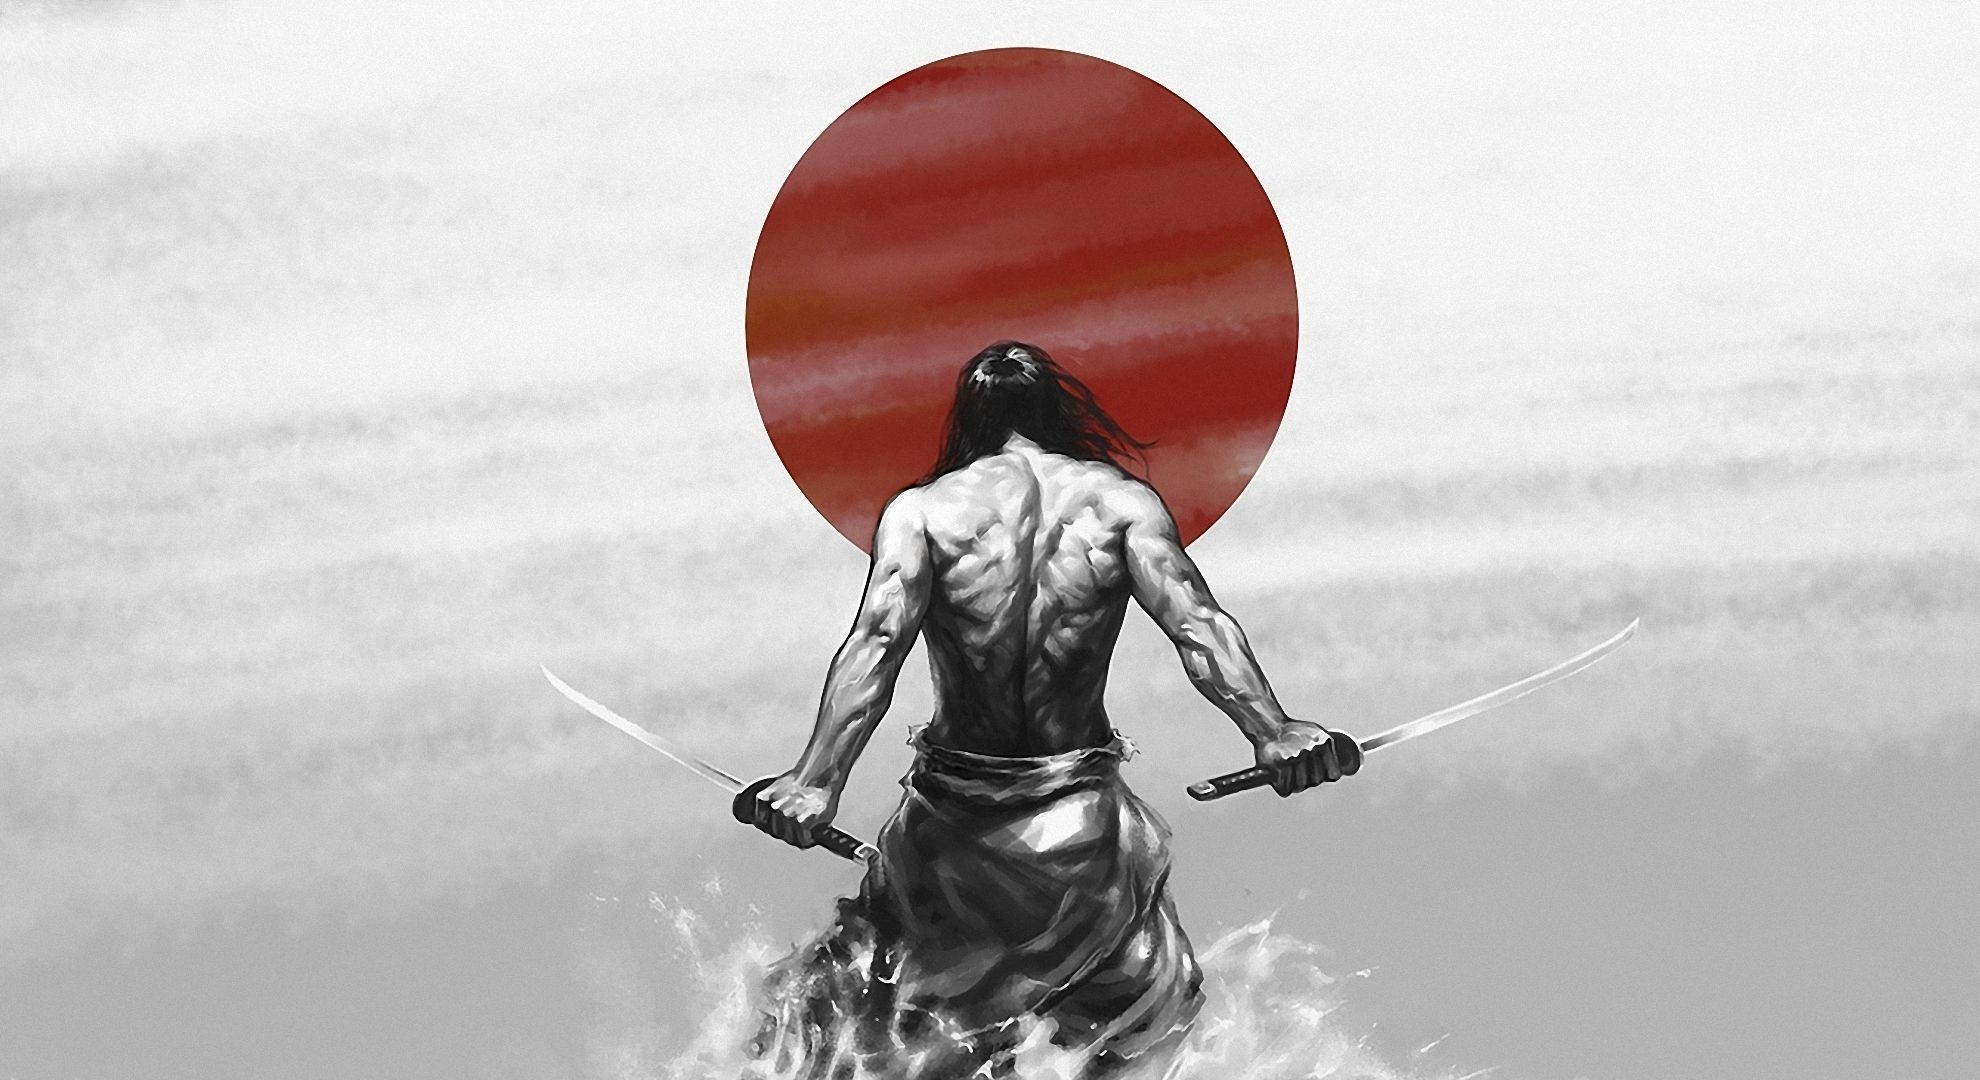 Res: 1980x1080, Gallery Wallpaper HD Samurai Image Collection Free Download